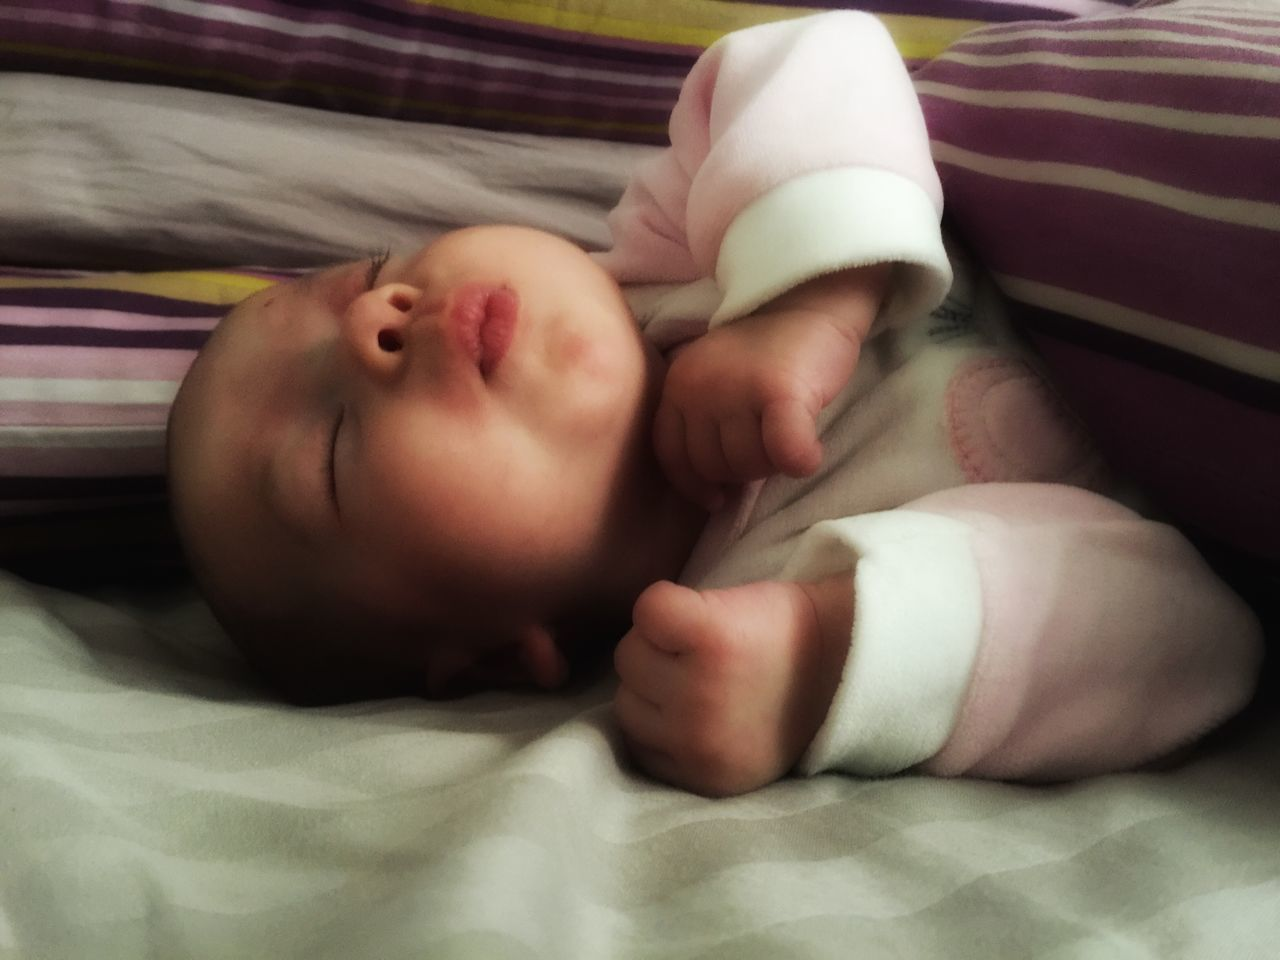 bed, baby, lying down, furniture, young, child, babyhood, childhood, real people, innocence, beginnings, new life, indoors, newborn, cute, relaxation, one person, sleeping